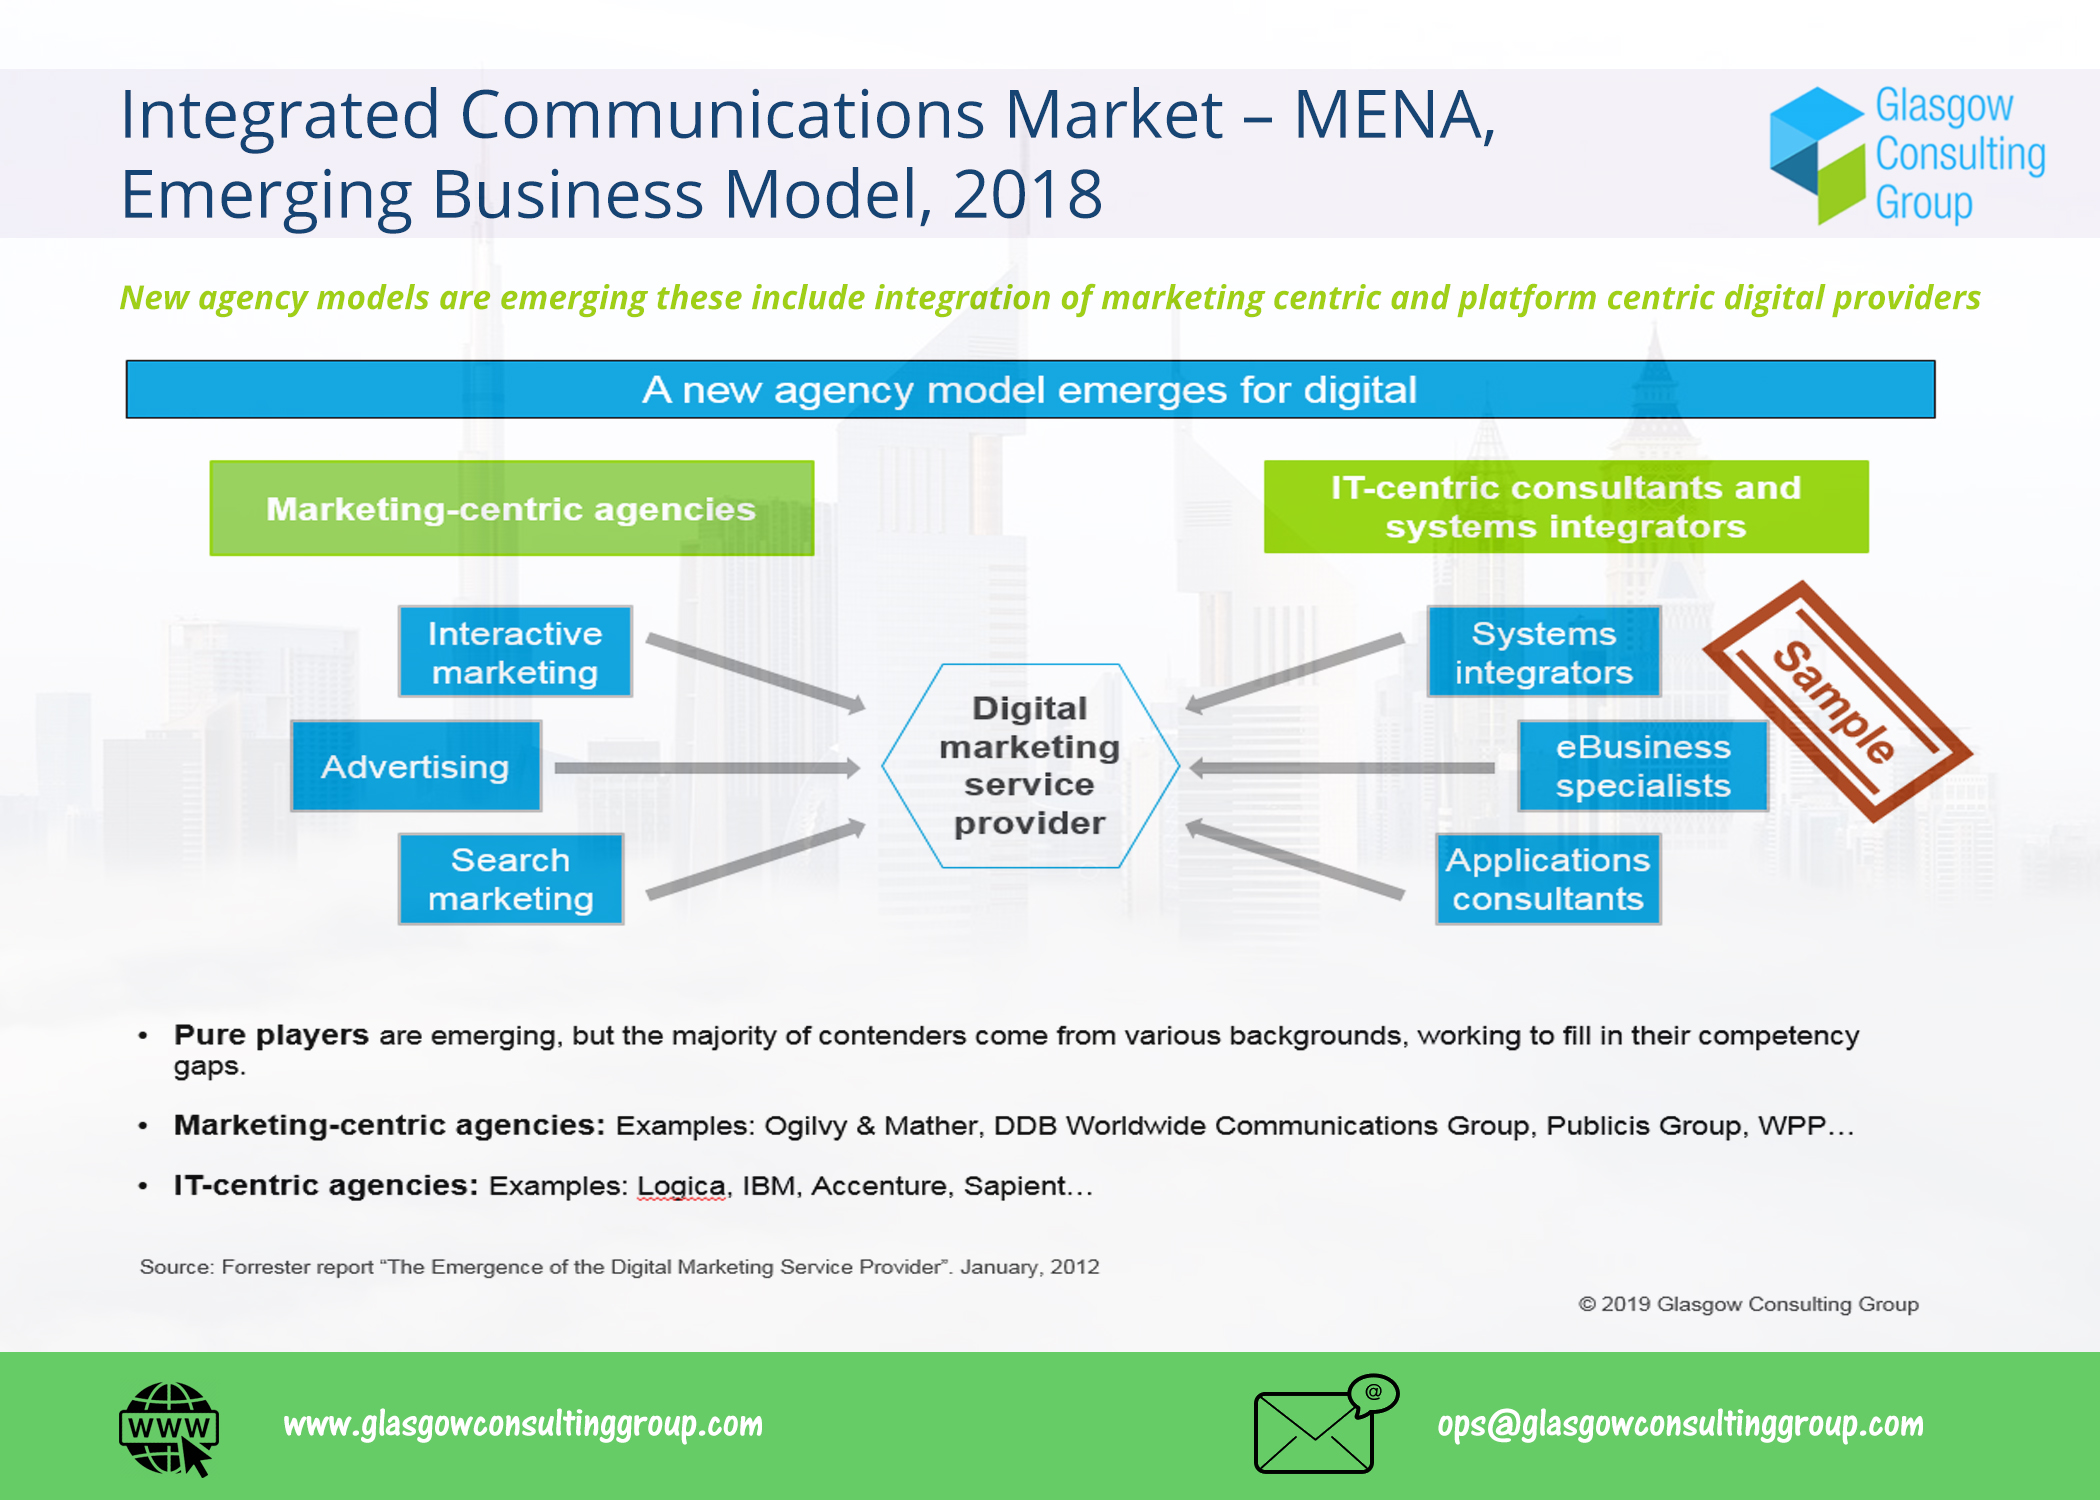 6 Integrated Communications Market MENA Emerging Business Model, 2018